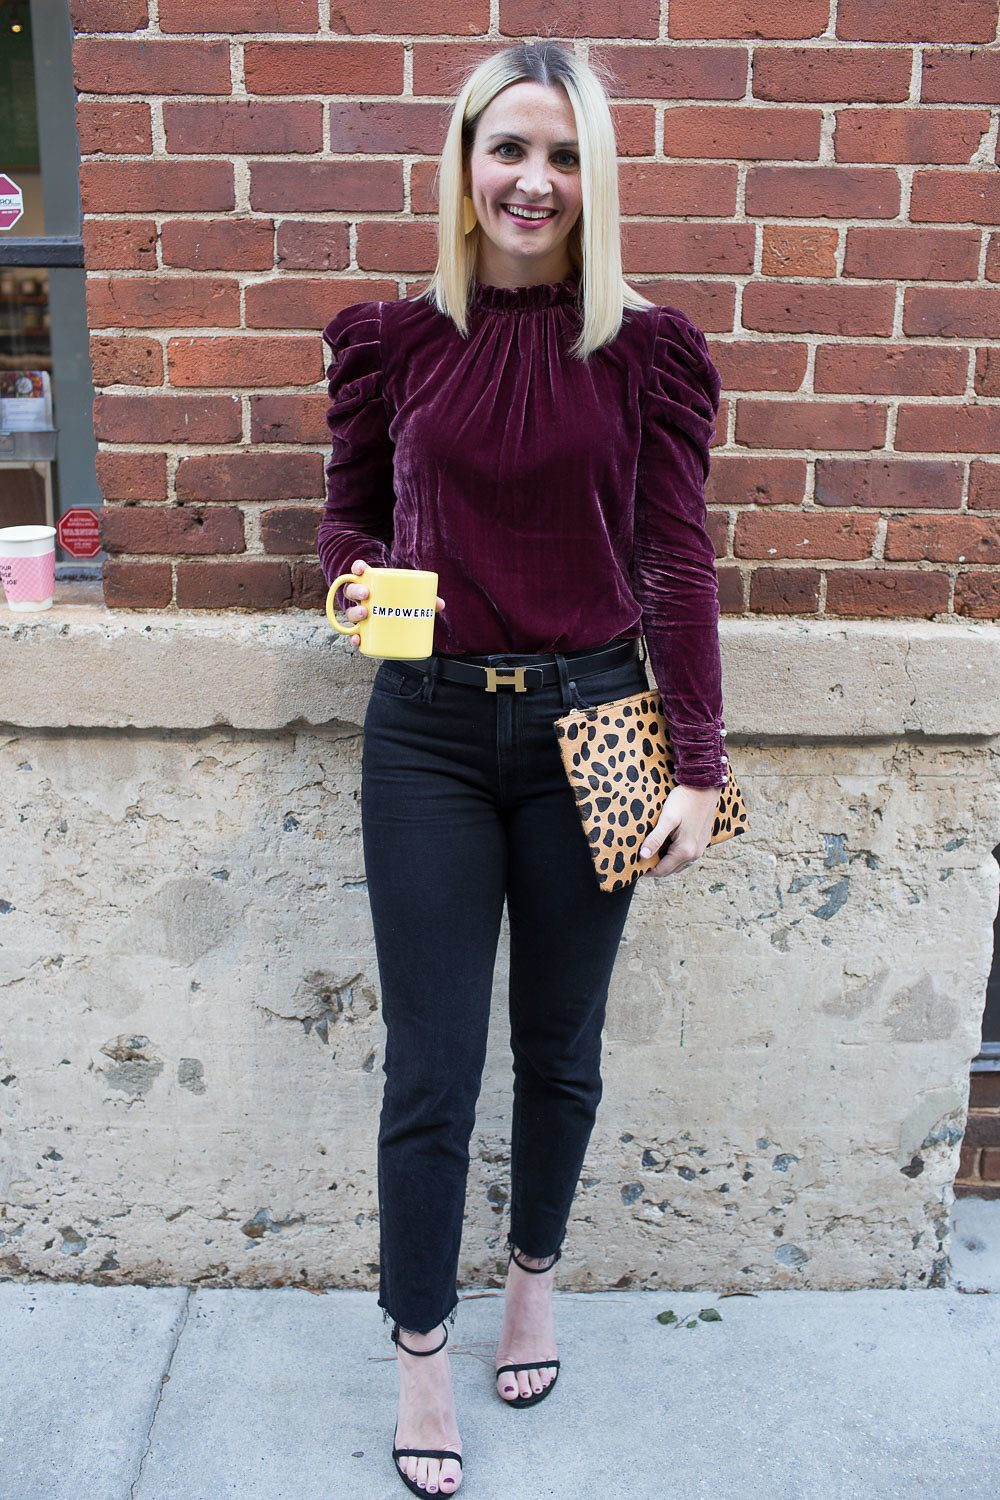 Velvet red top on Kate Brennan: Chic mom style